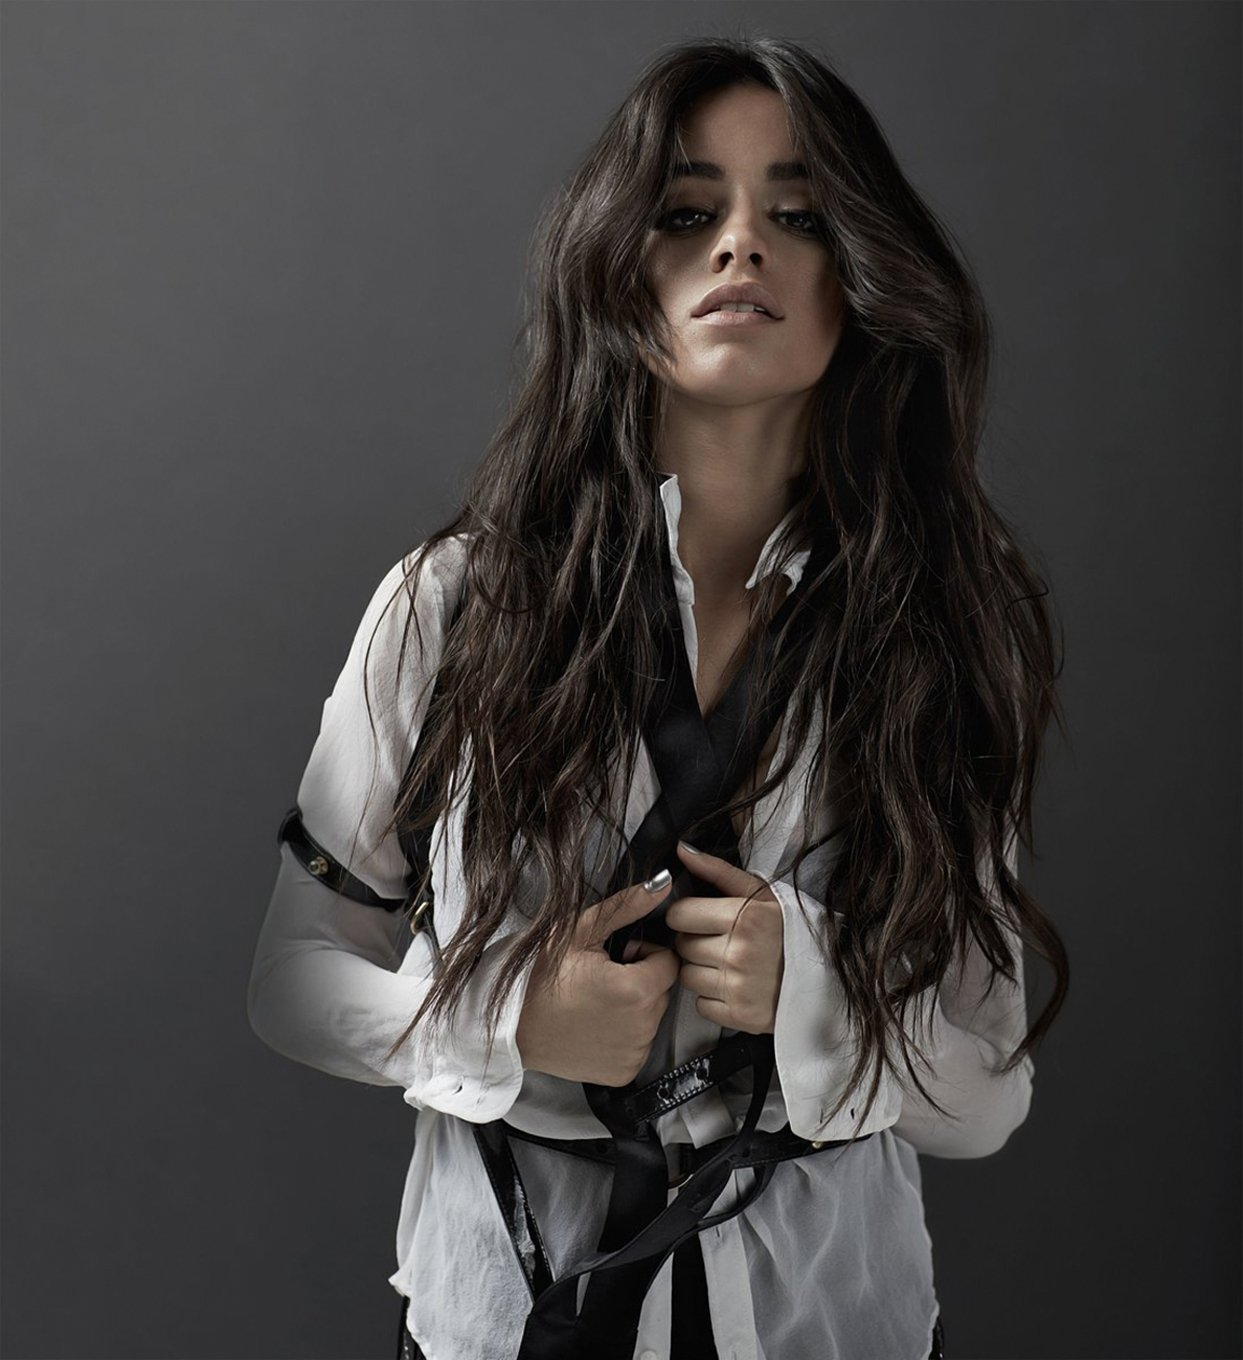 camila cabello photo gallery high quality pics of camila